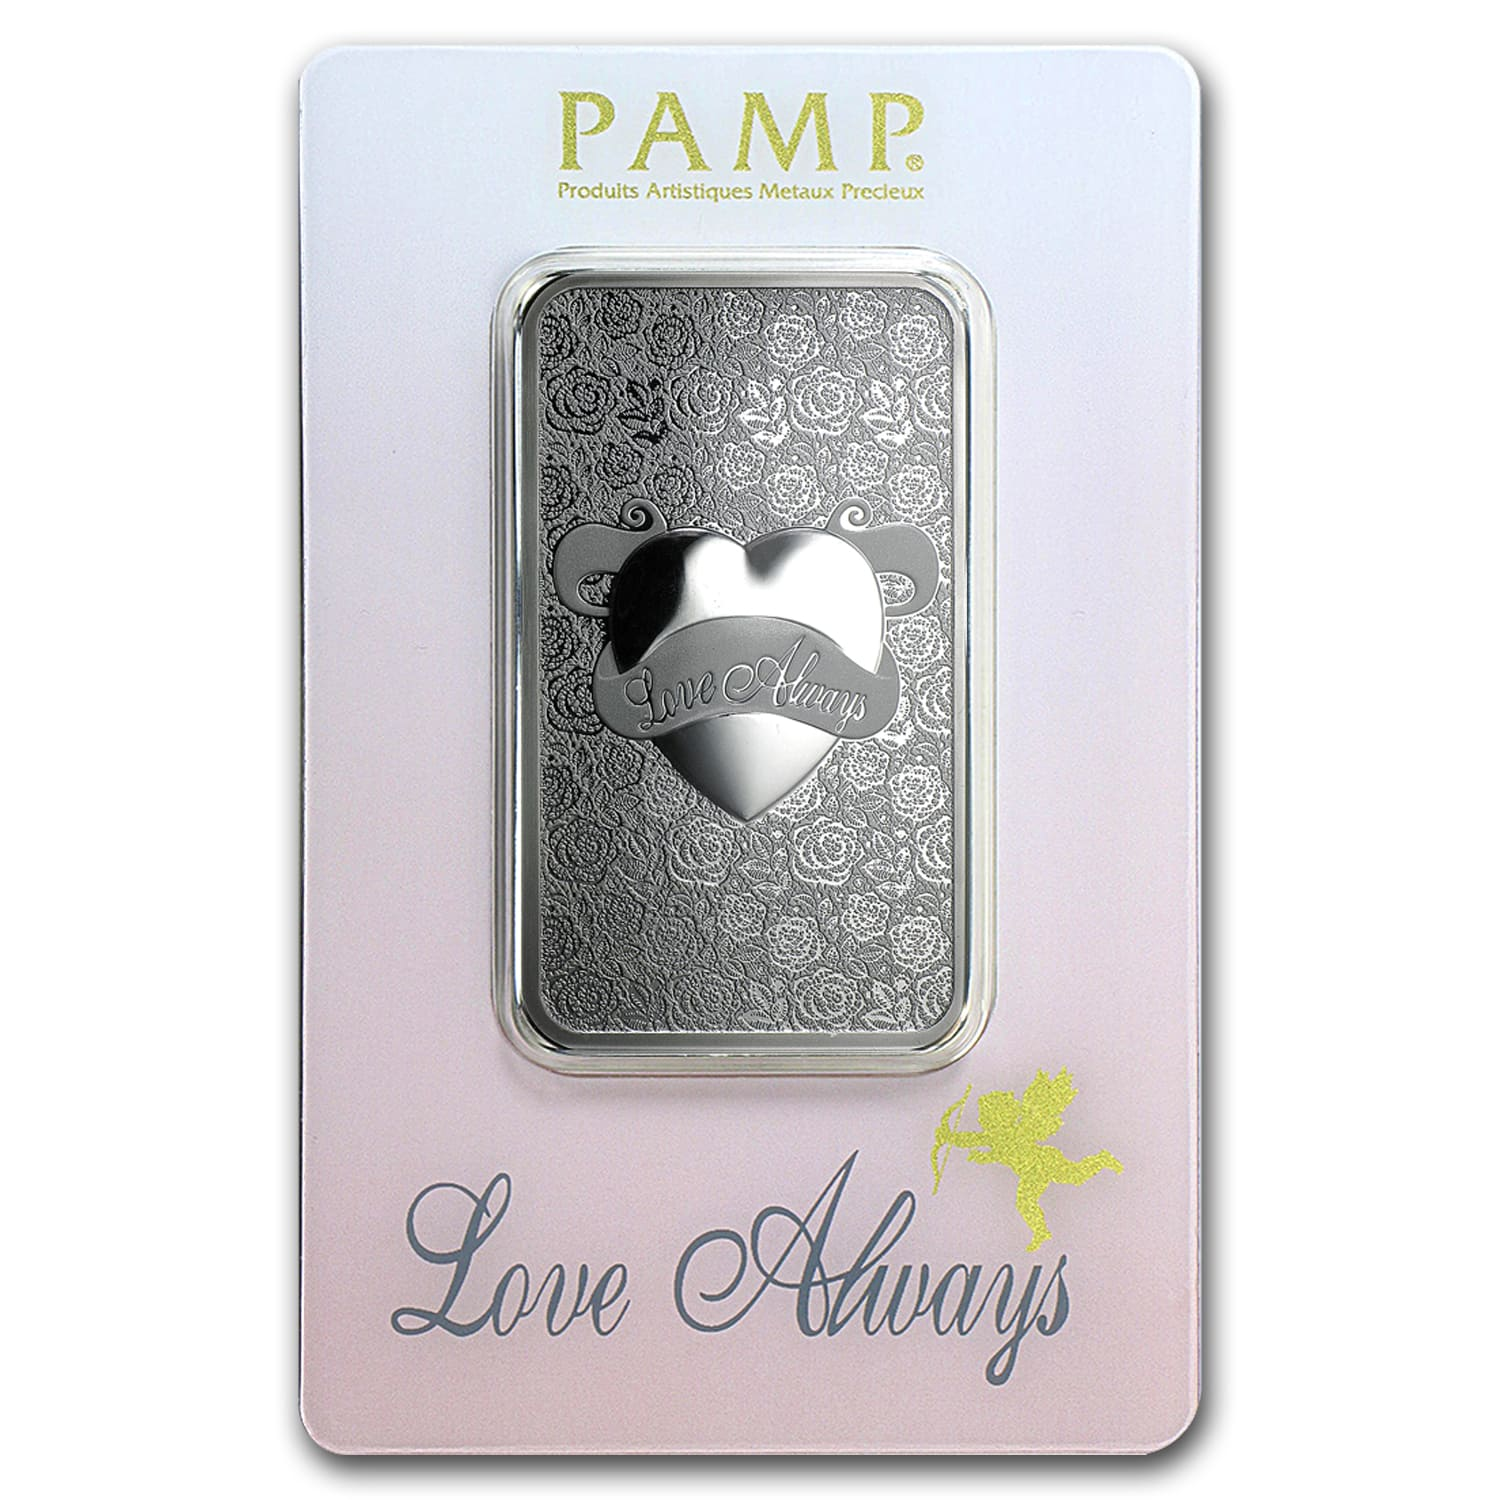 1 oz Silver Bar - PAMP Suisse (Love Always, In Assay)